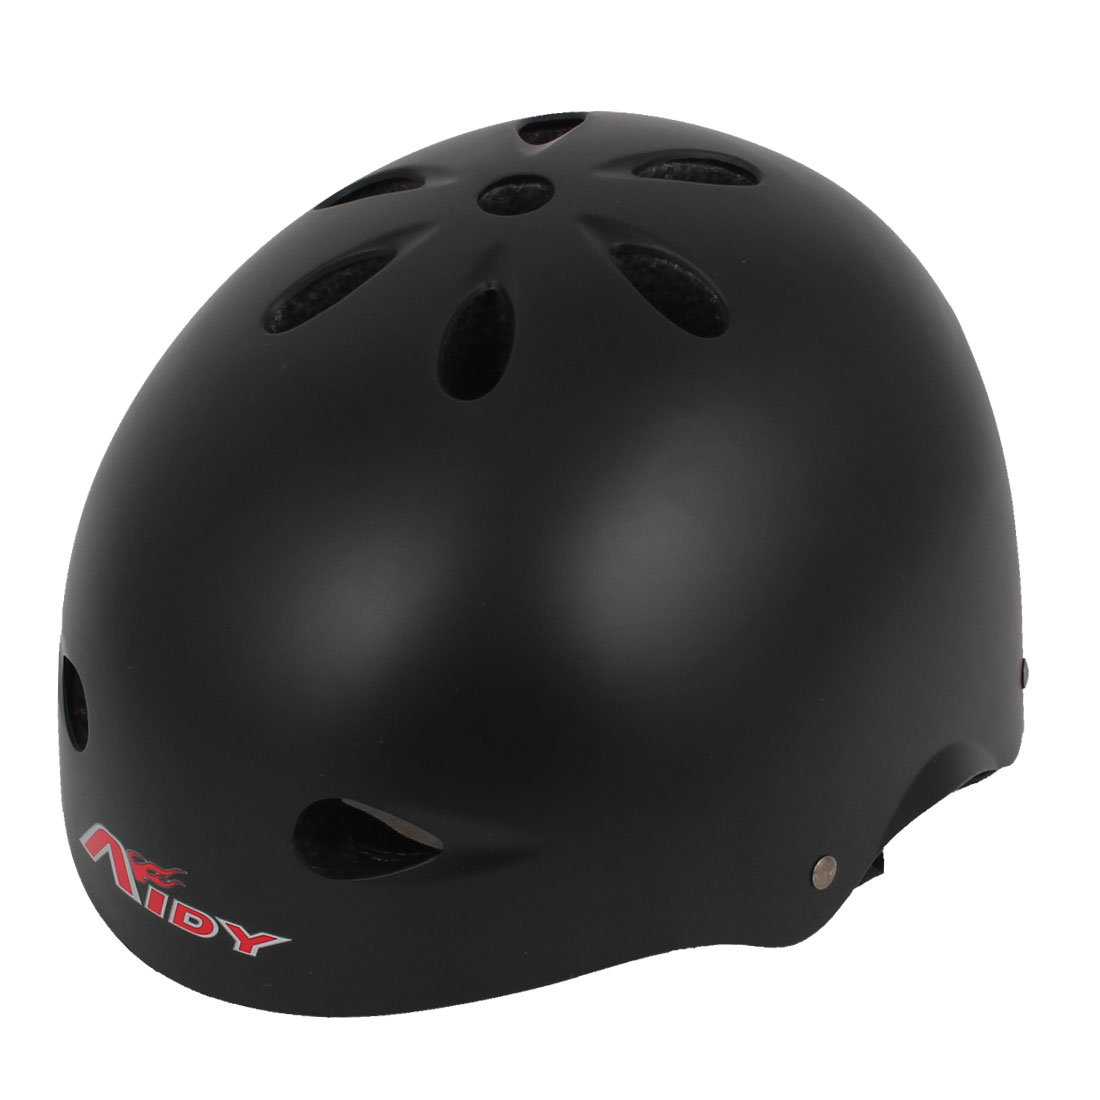 Adults EPS BMX Bike Bicycle Cycling Protective Ski Snowboard Skating Helmet Black